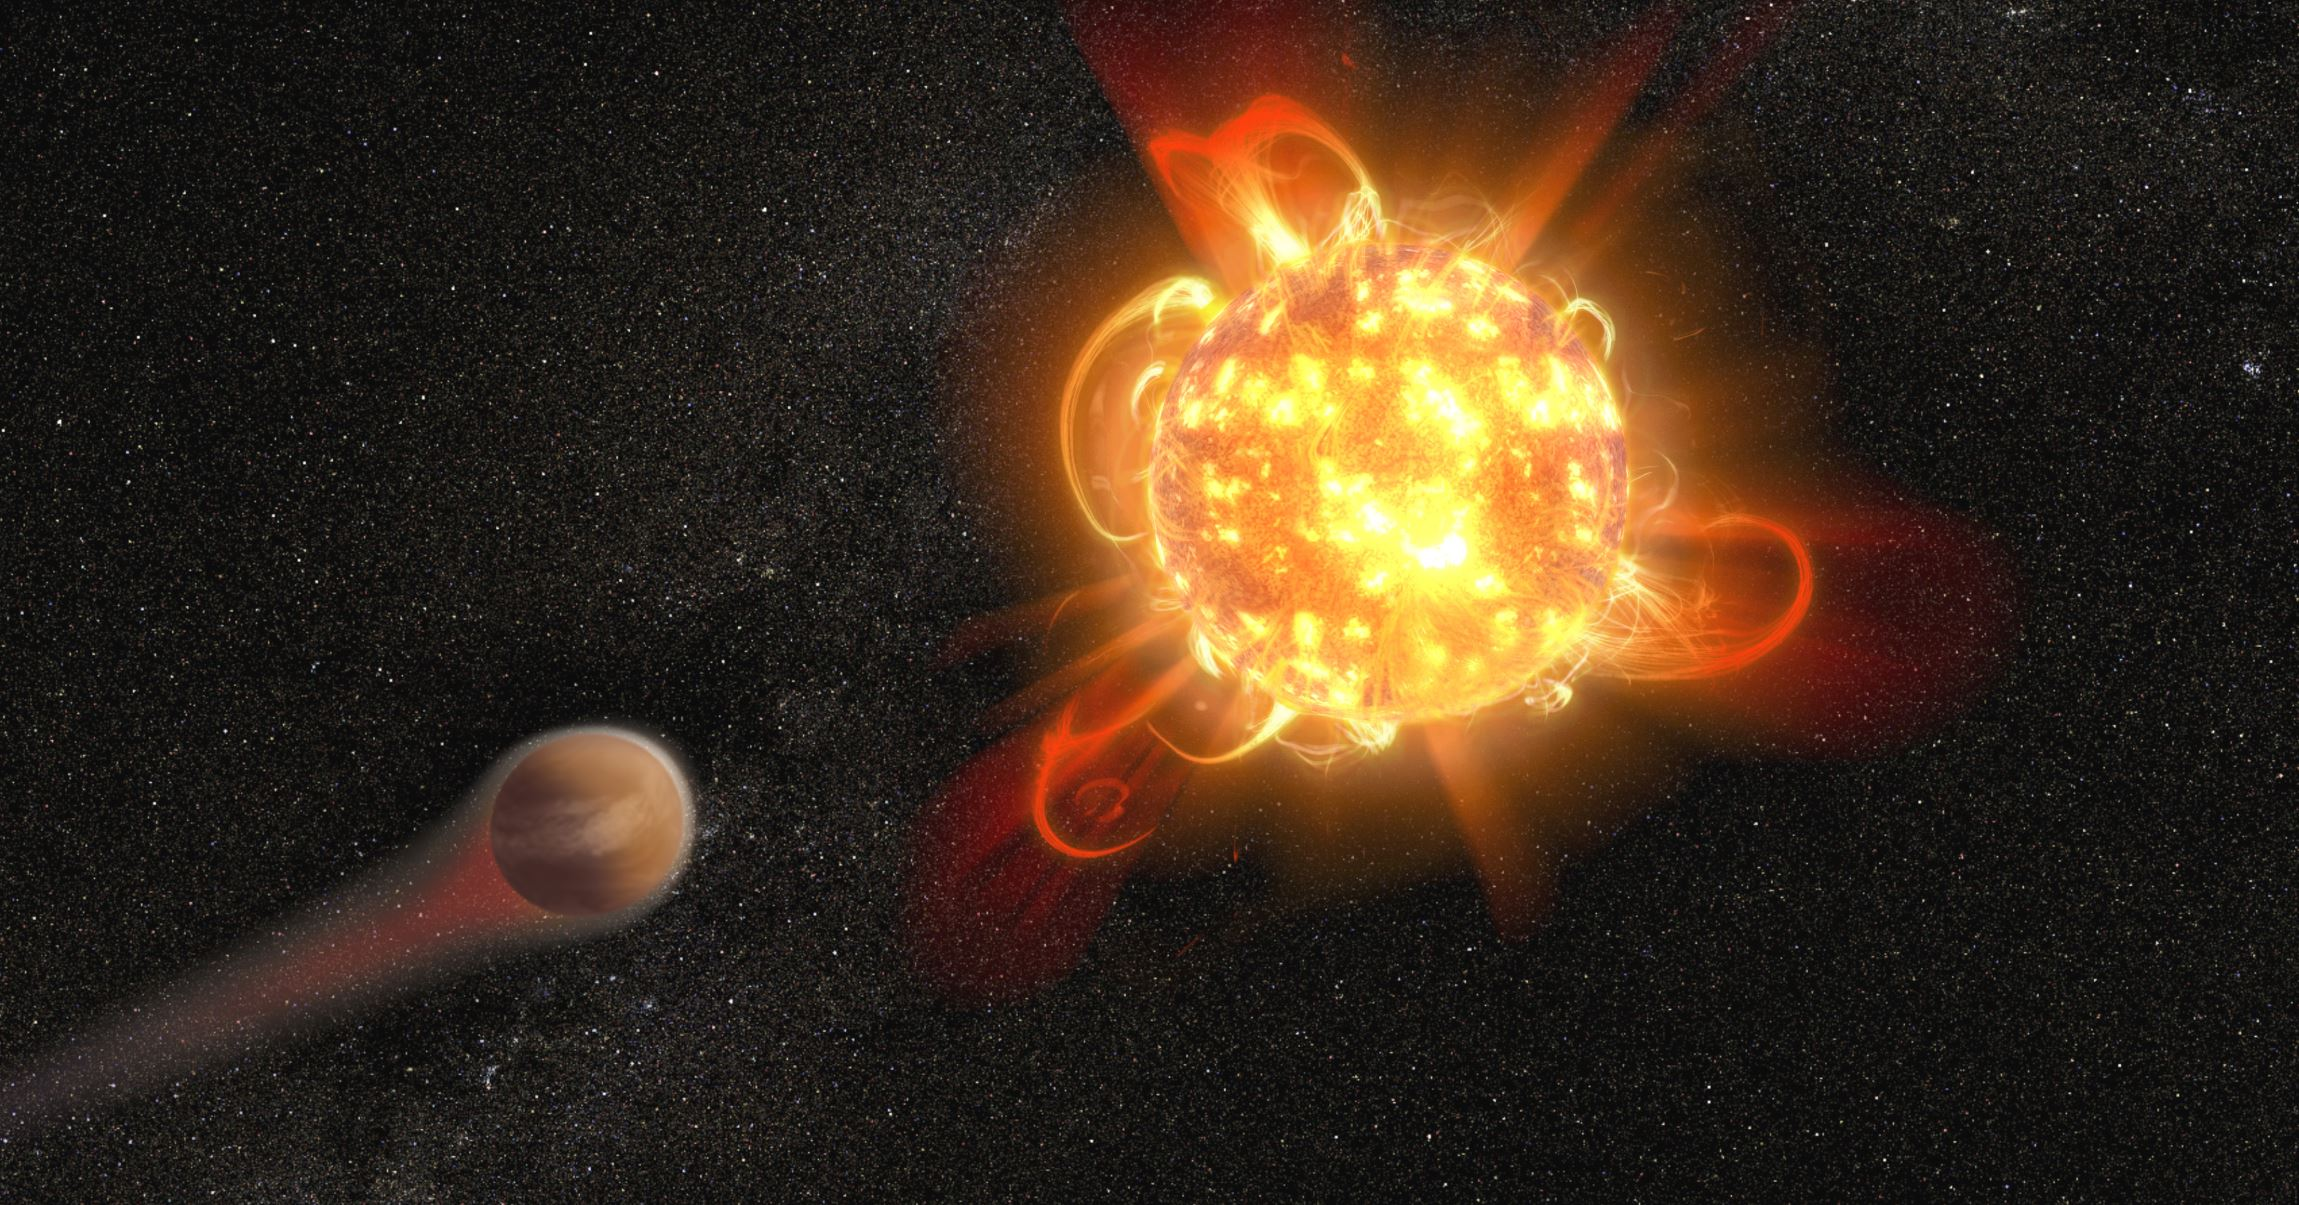 The violent outbursts from red dwarf stars, particularly young ones, may make planets in their so-called habitable zone uninhabitable. - Image Credits: NASA, ESA and D. Player (STScI)